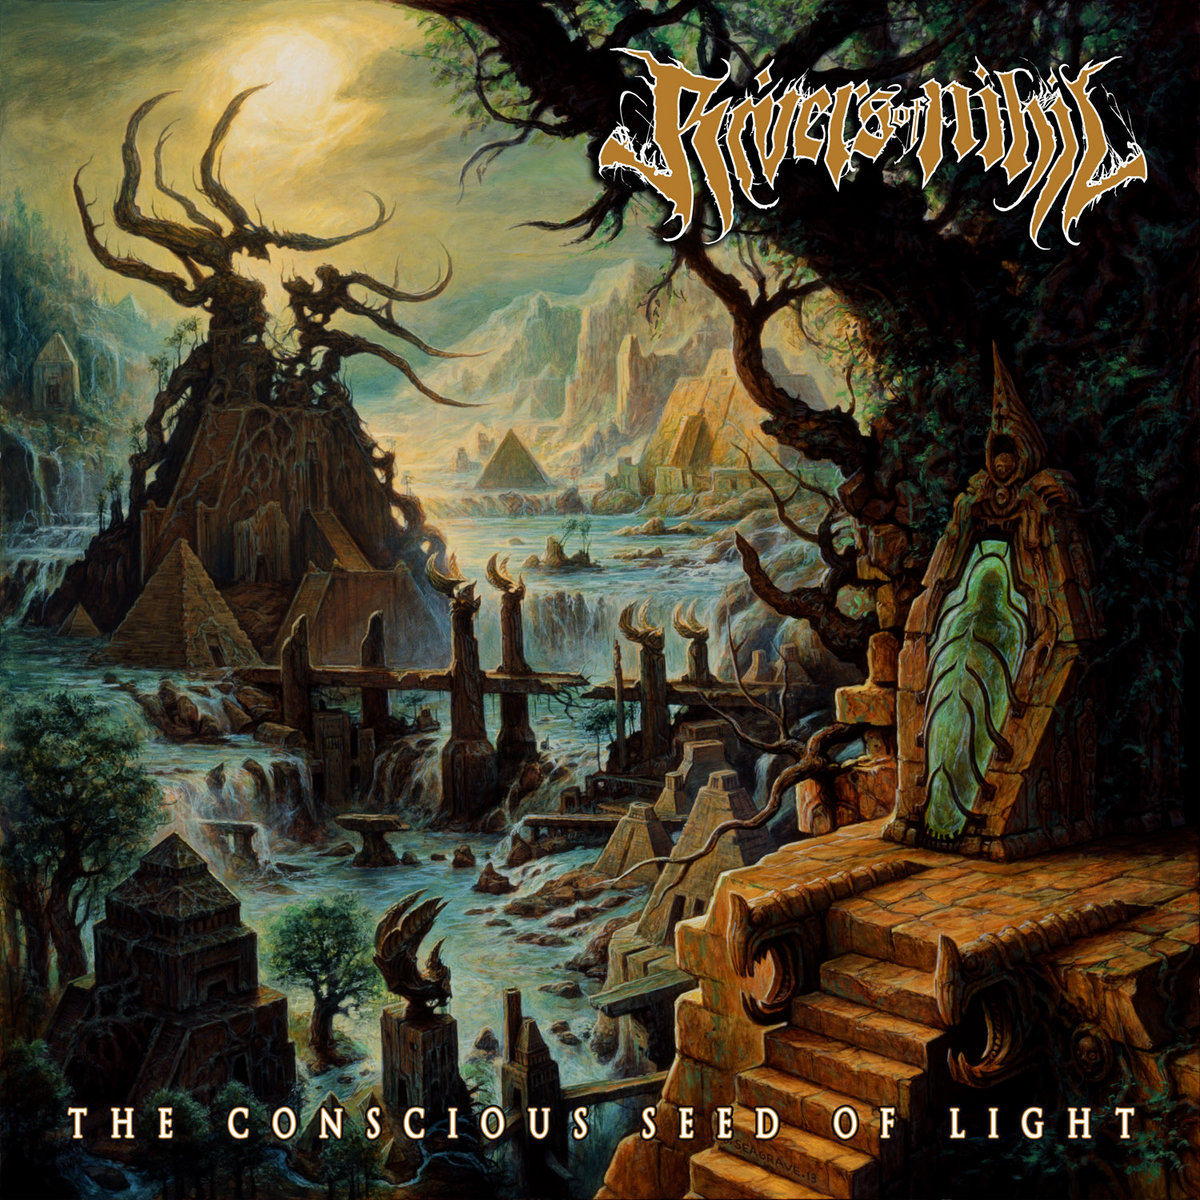 The Conscious Seed Of Light Rivers Of Nihil - Rivers of